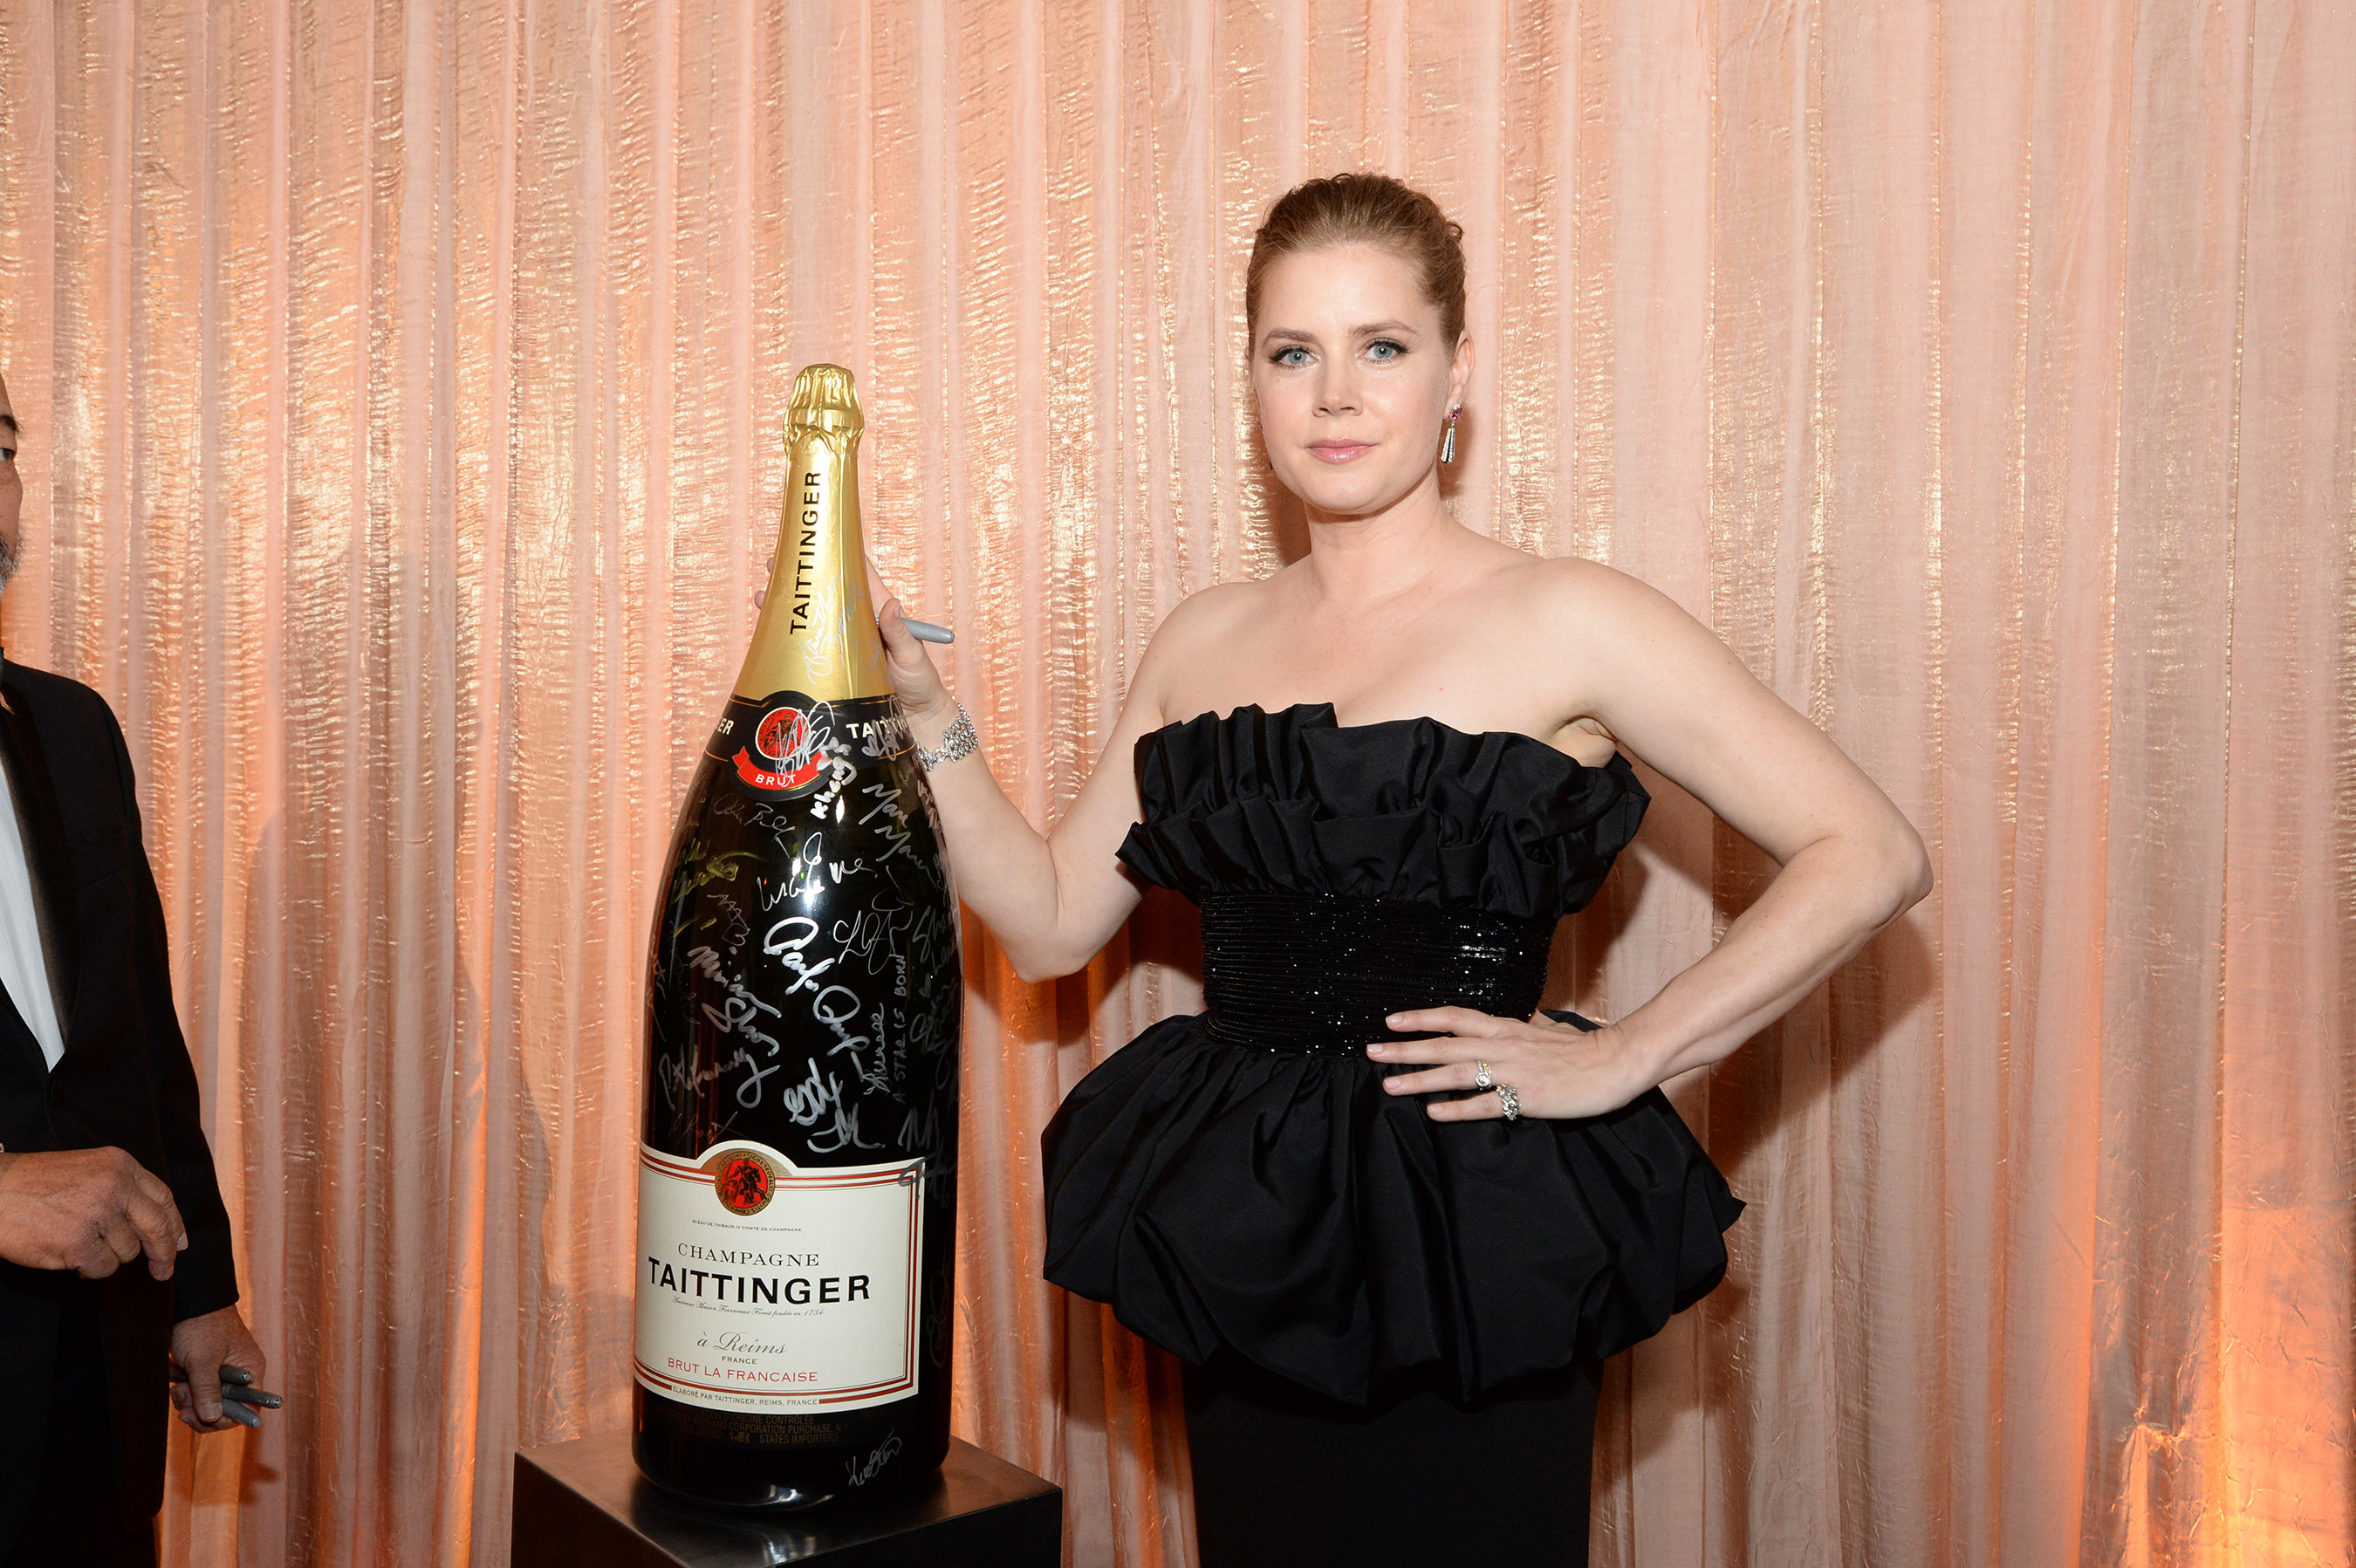 Amy Adams adds signature to Champagne Taittinger's bottle activation at the 25th Annual Screen Actors Guild Awards on January 27, 2019.